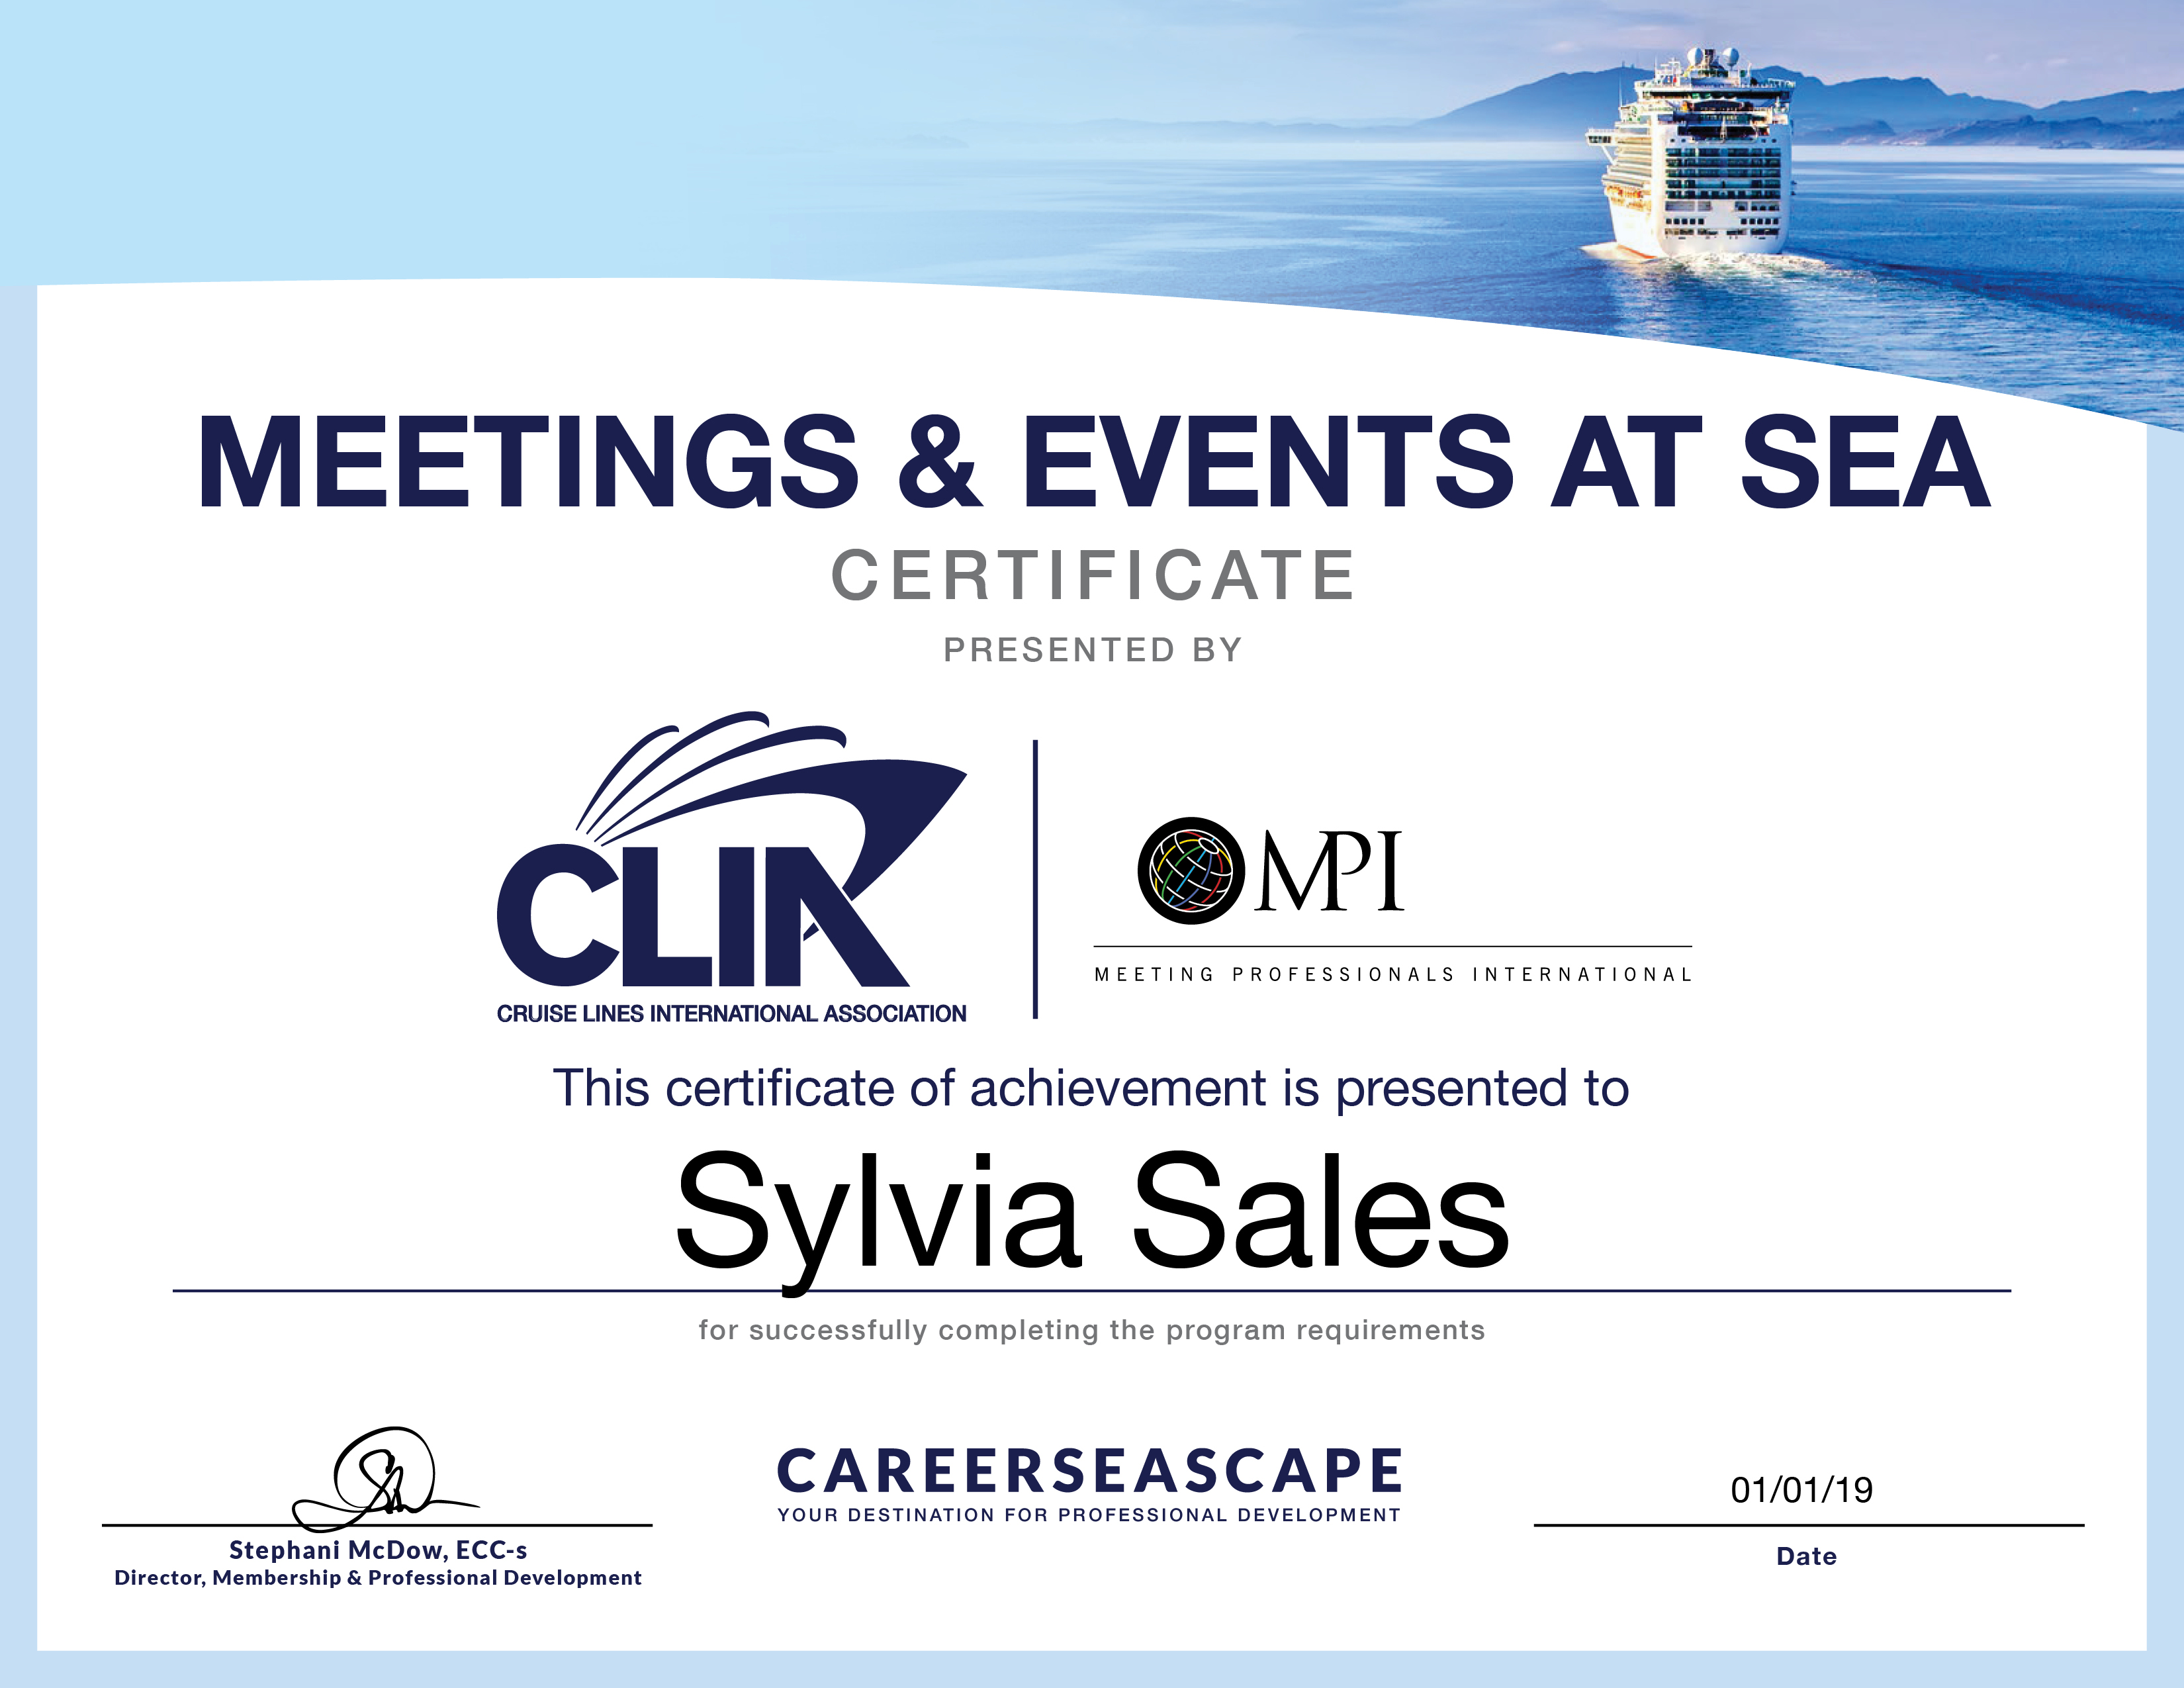 Meetings & Events at Sea Certificate